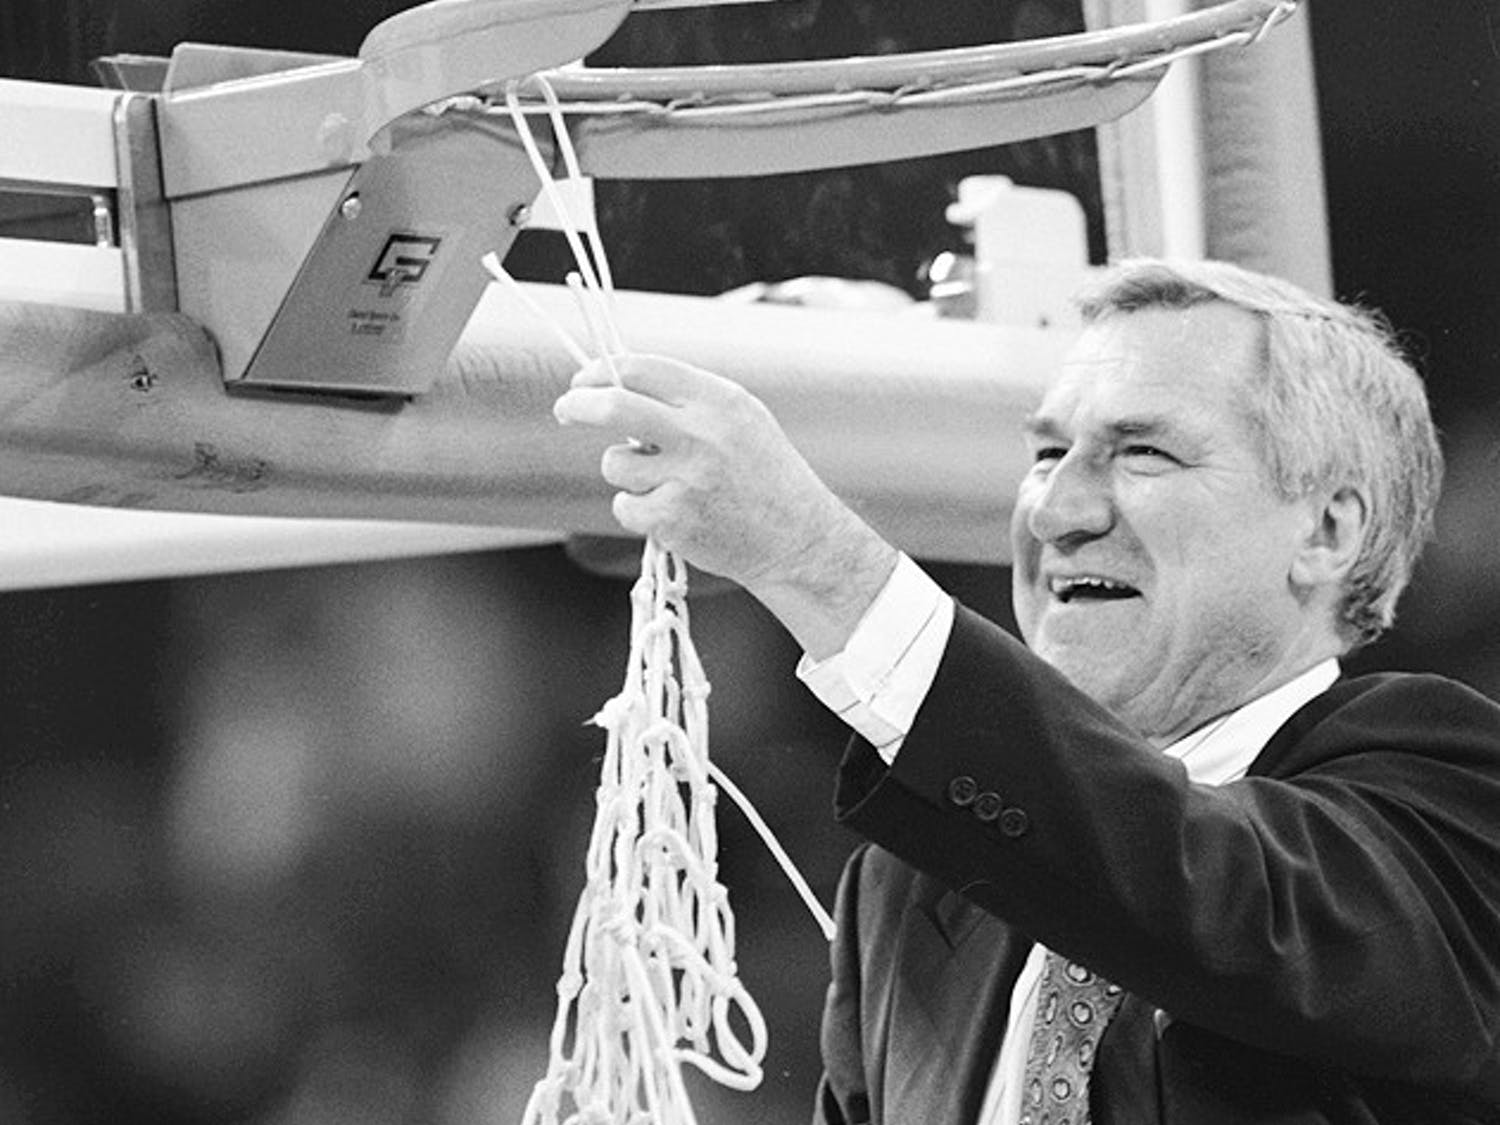 Previous Head Coach Dean Smith cuts down the net at the UNC vs. Michigan NCAA championship game in New Orleans, L.A. in 1993.   	Photo Courtesy of North Carolina Collection, UNC-CH